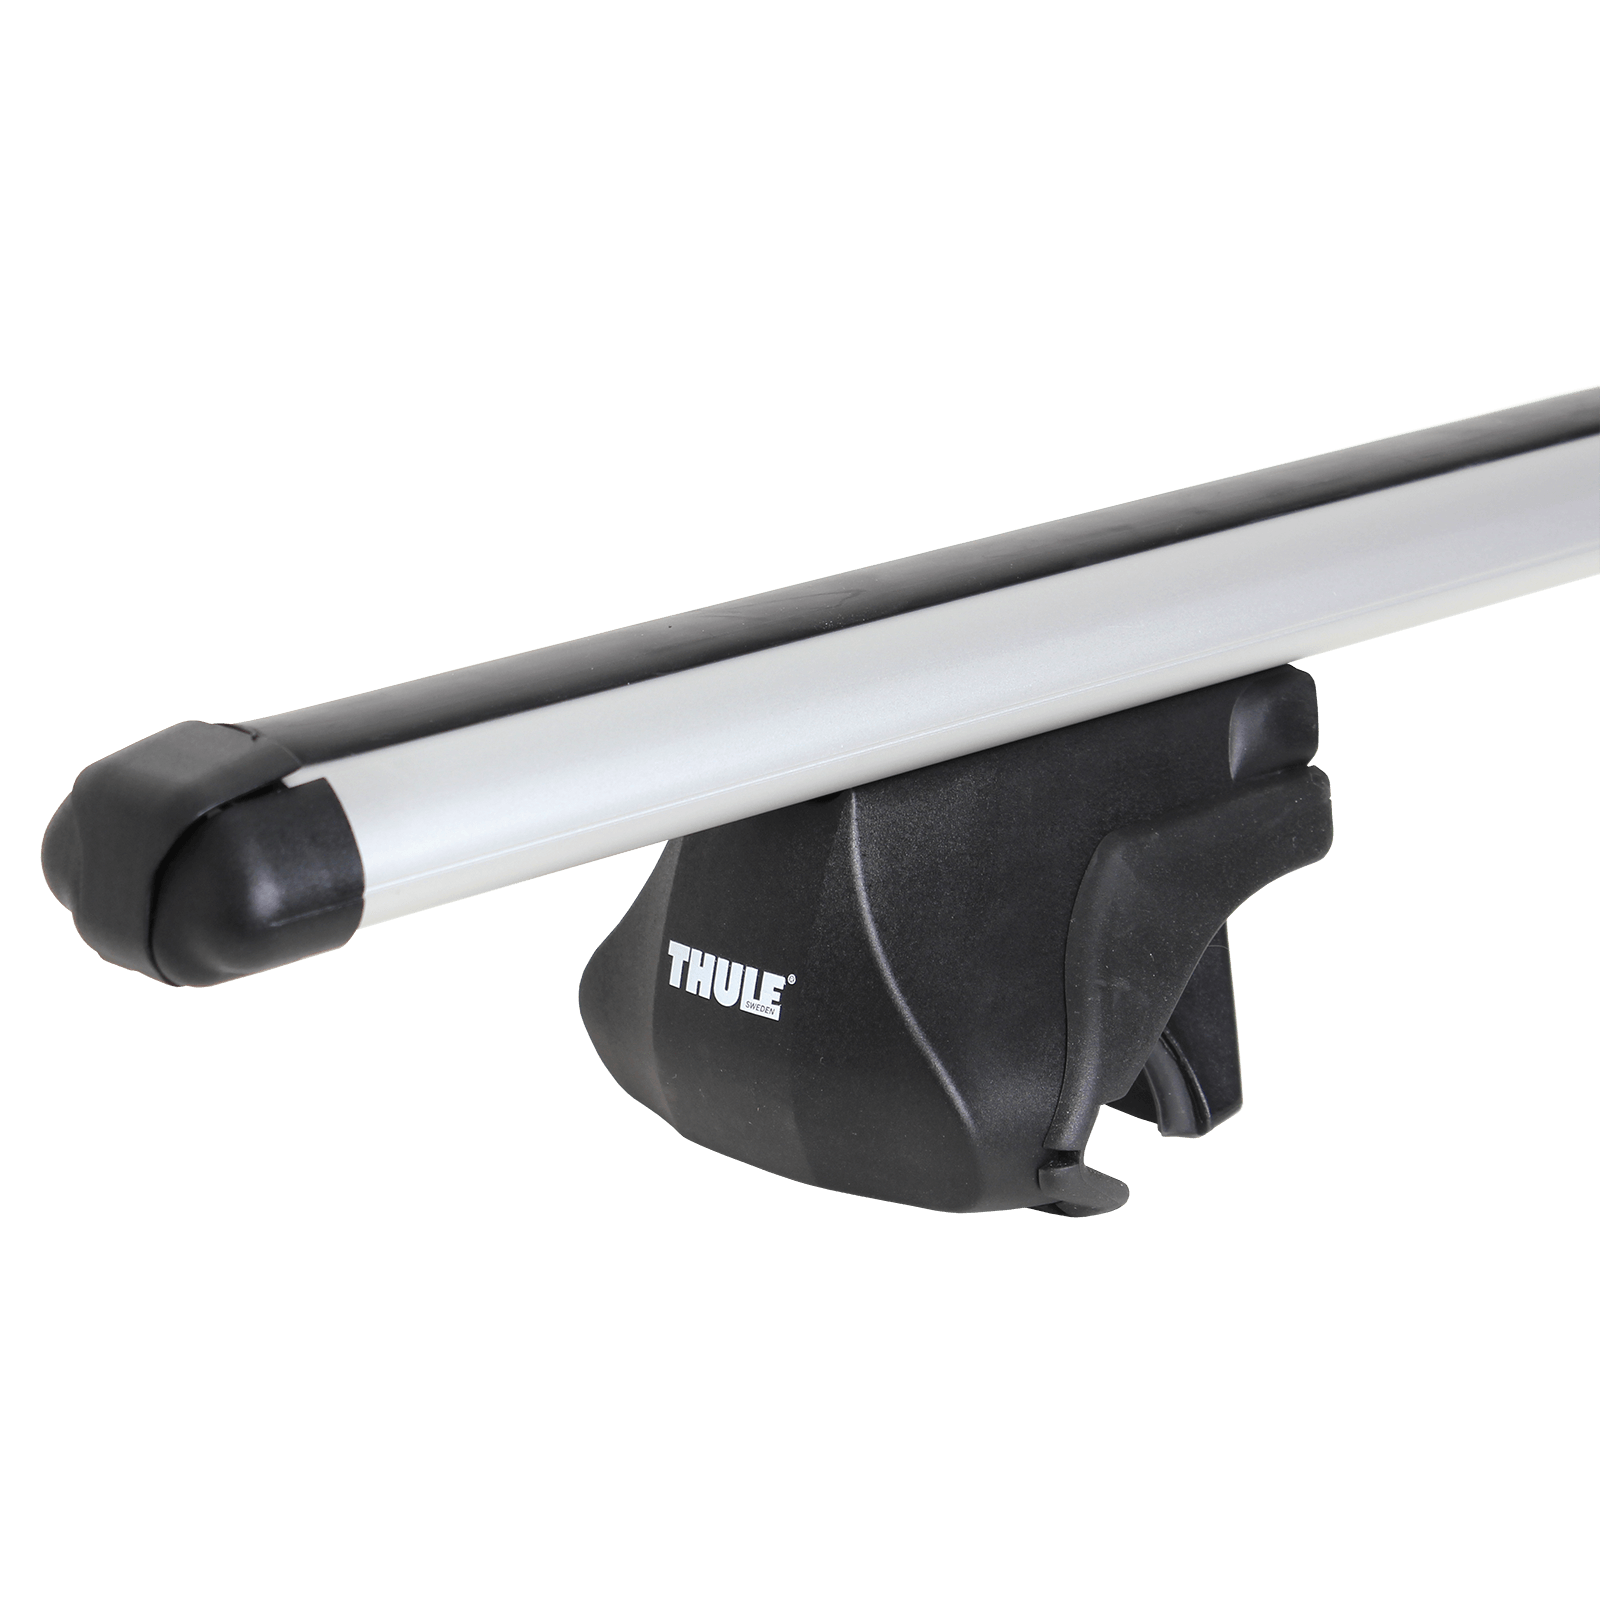 Roof Rack Thule SmartRack For AUDI A4 Avant Year Of Make